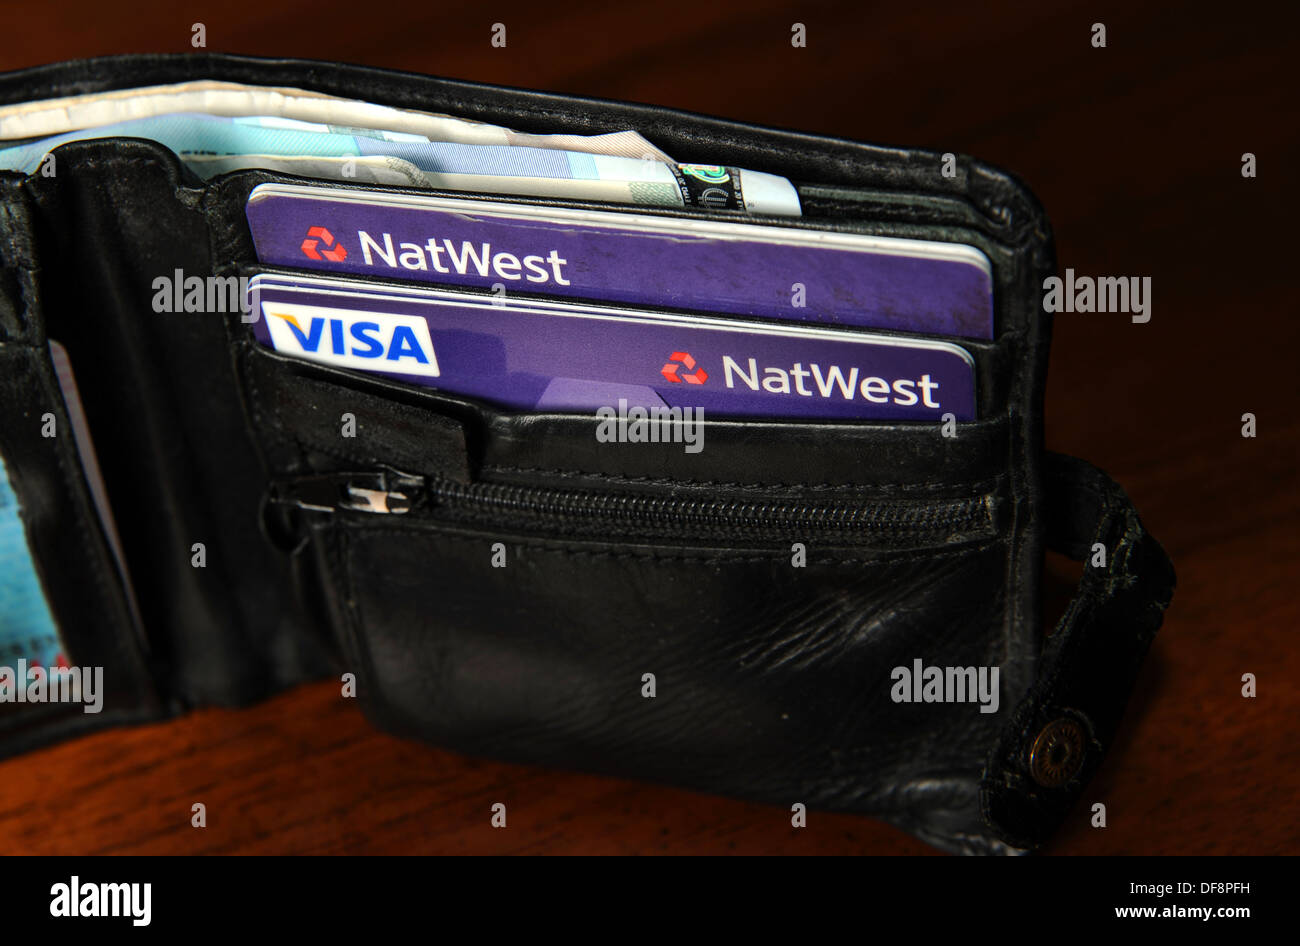 National Westminster NatWest credit cards and Visa debit cards in a ...